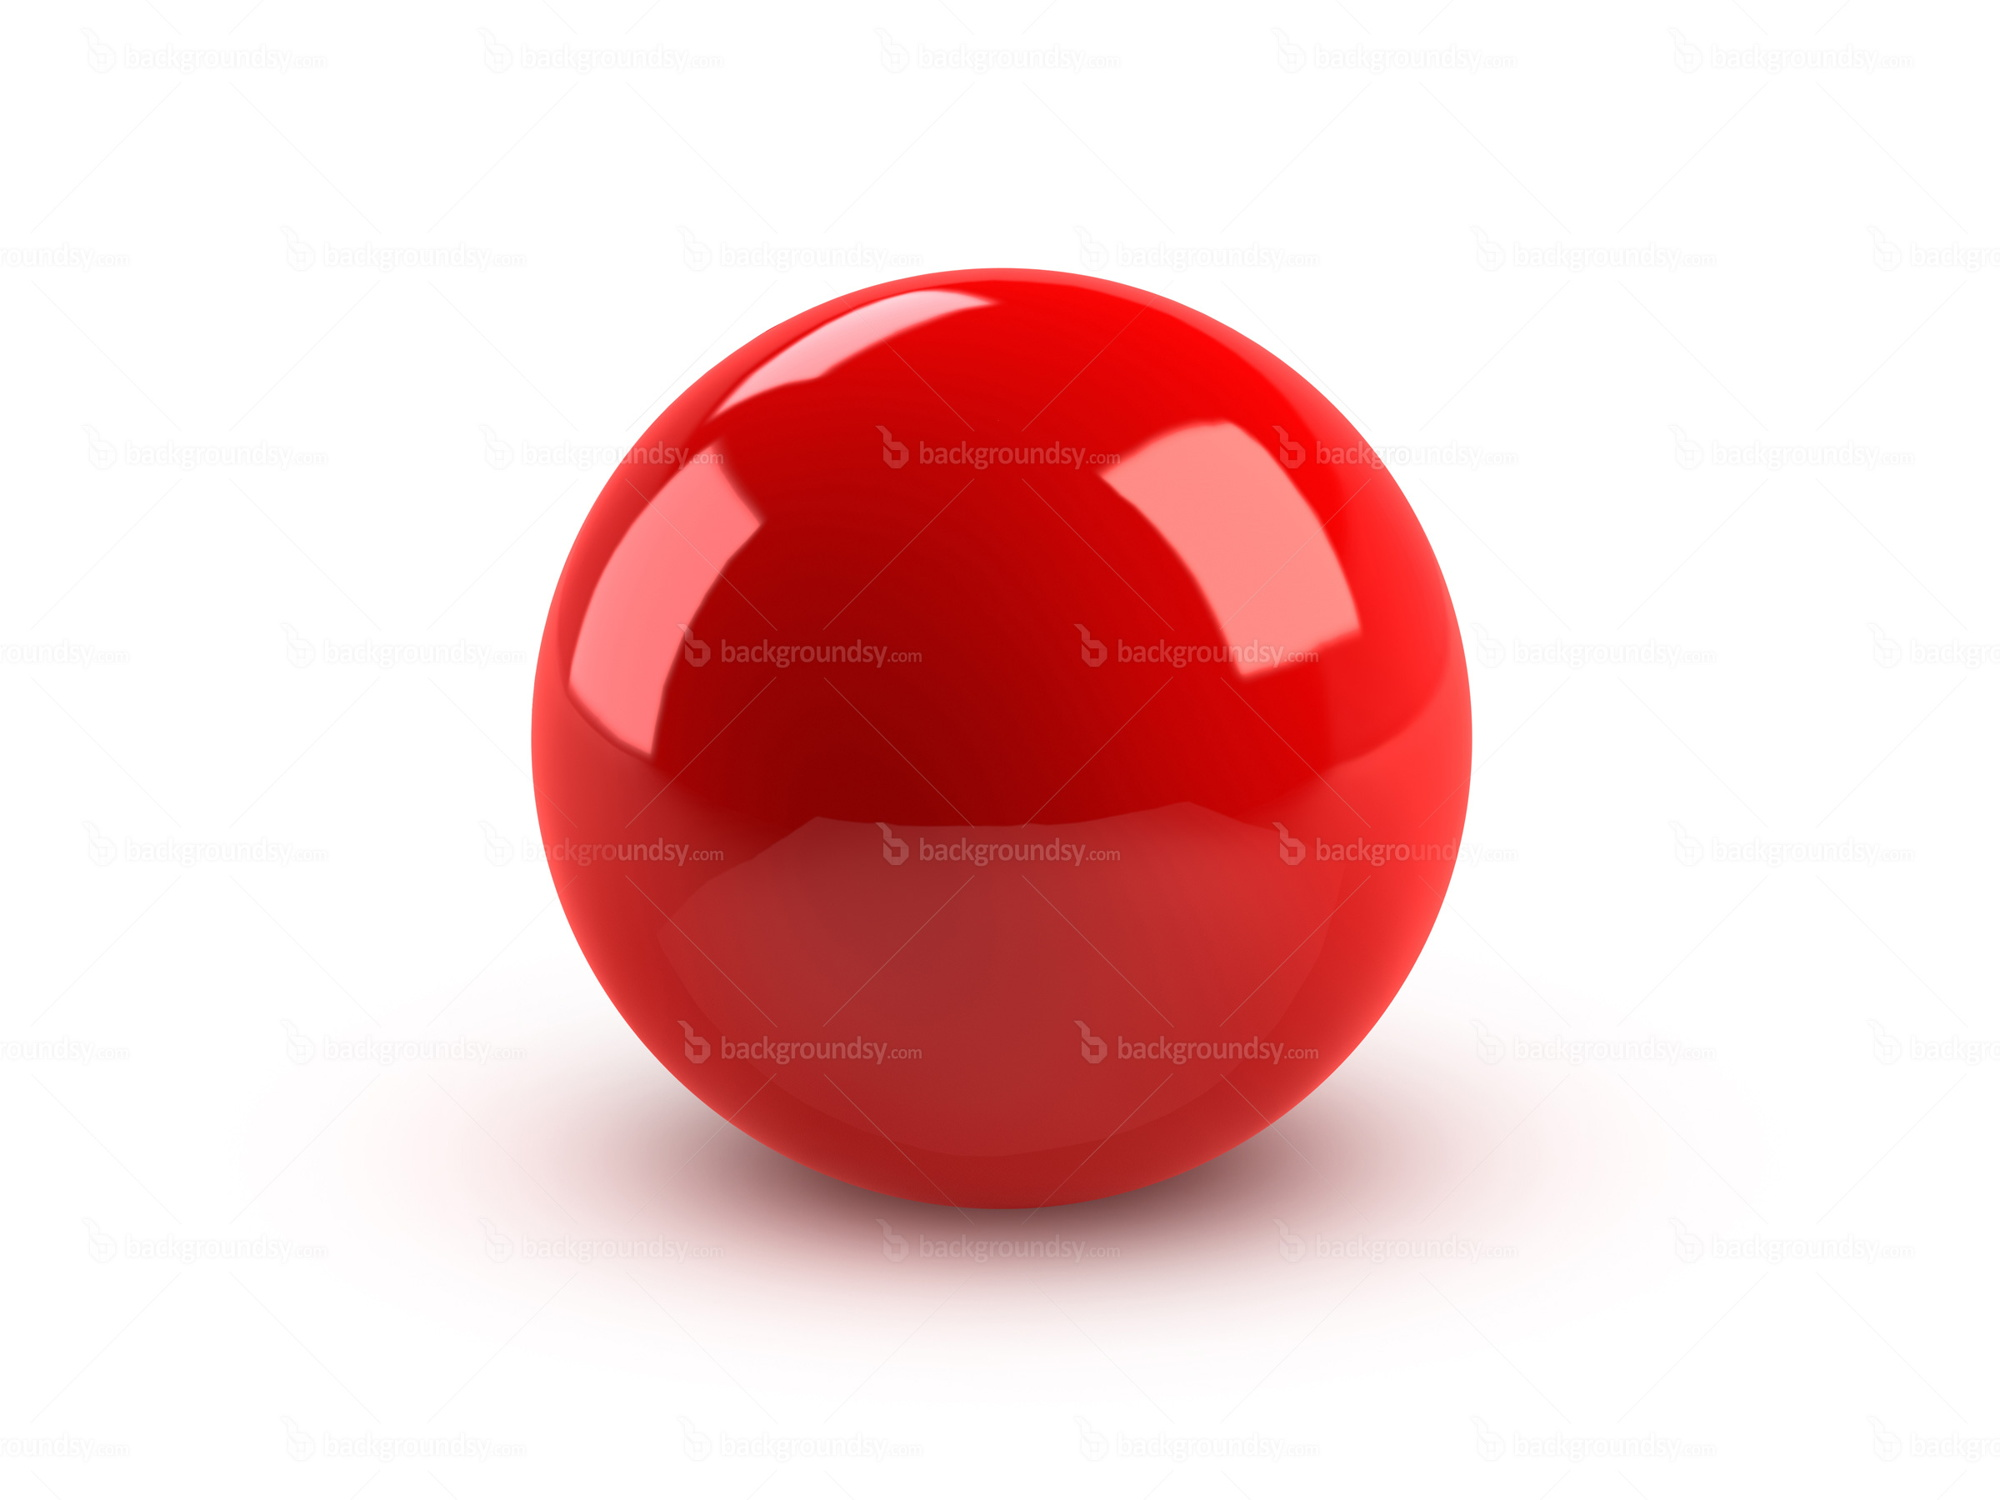 red ball isolated backgroundsy com golf cart clip art free images golf cart clip art png